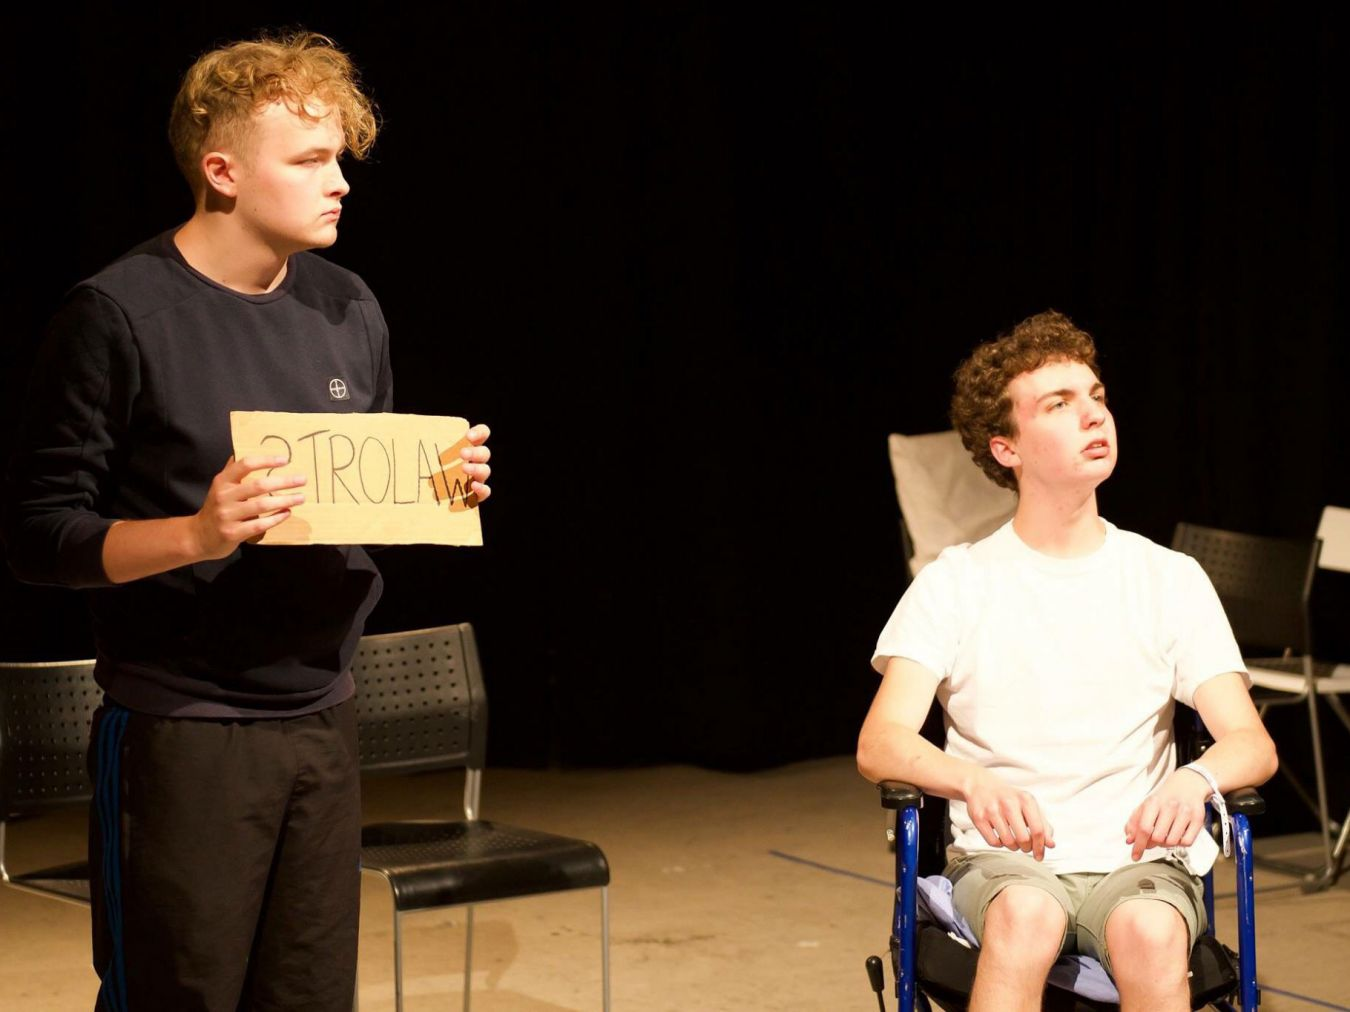 Matthew Mahoney (right) stars as a teenager struggling with disability in a play inspired by the life of Jack Binstead.